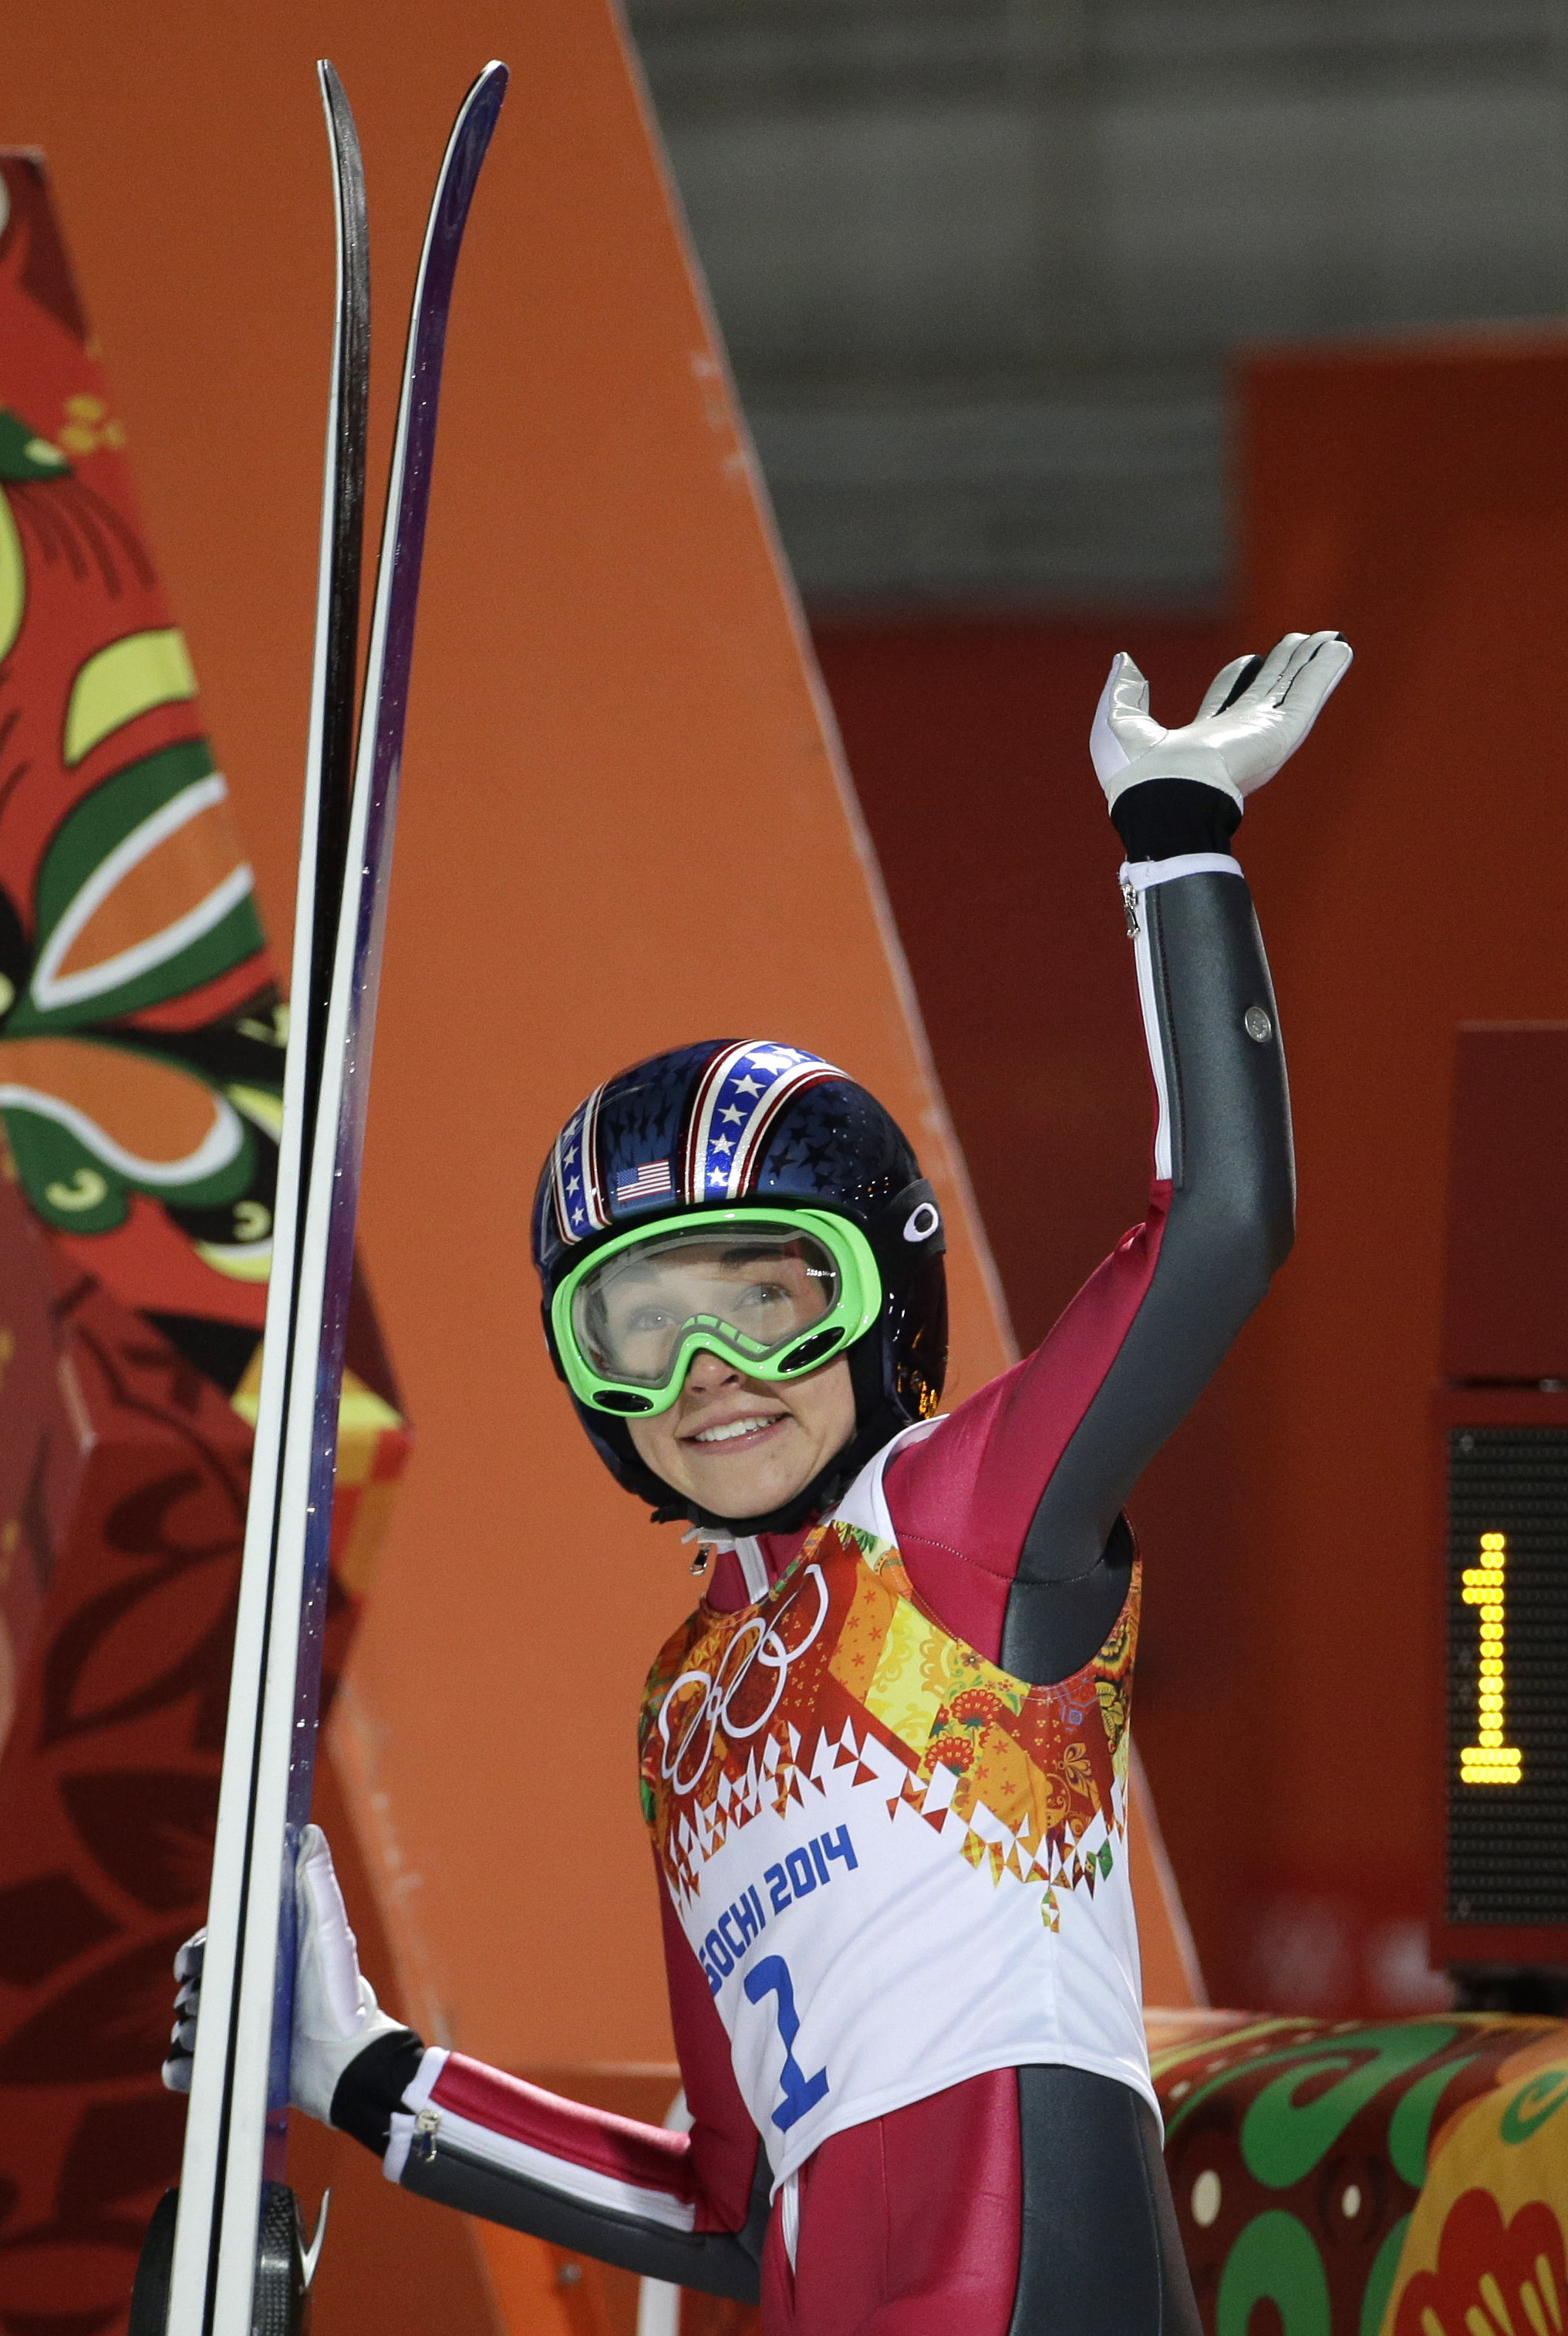 United States' Sarah Hendrickson smiles and waves after her first attempt during the women's normal hill ski jumping final at the 2014 Winter Olympics, Tuesday, Feb. 11, 2014, in Krasnaya Polyana, Russia. (AP Photo/Gregorio Borgia)